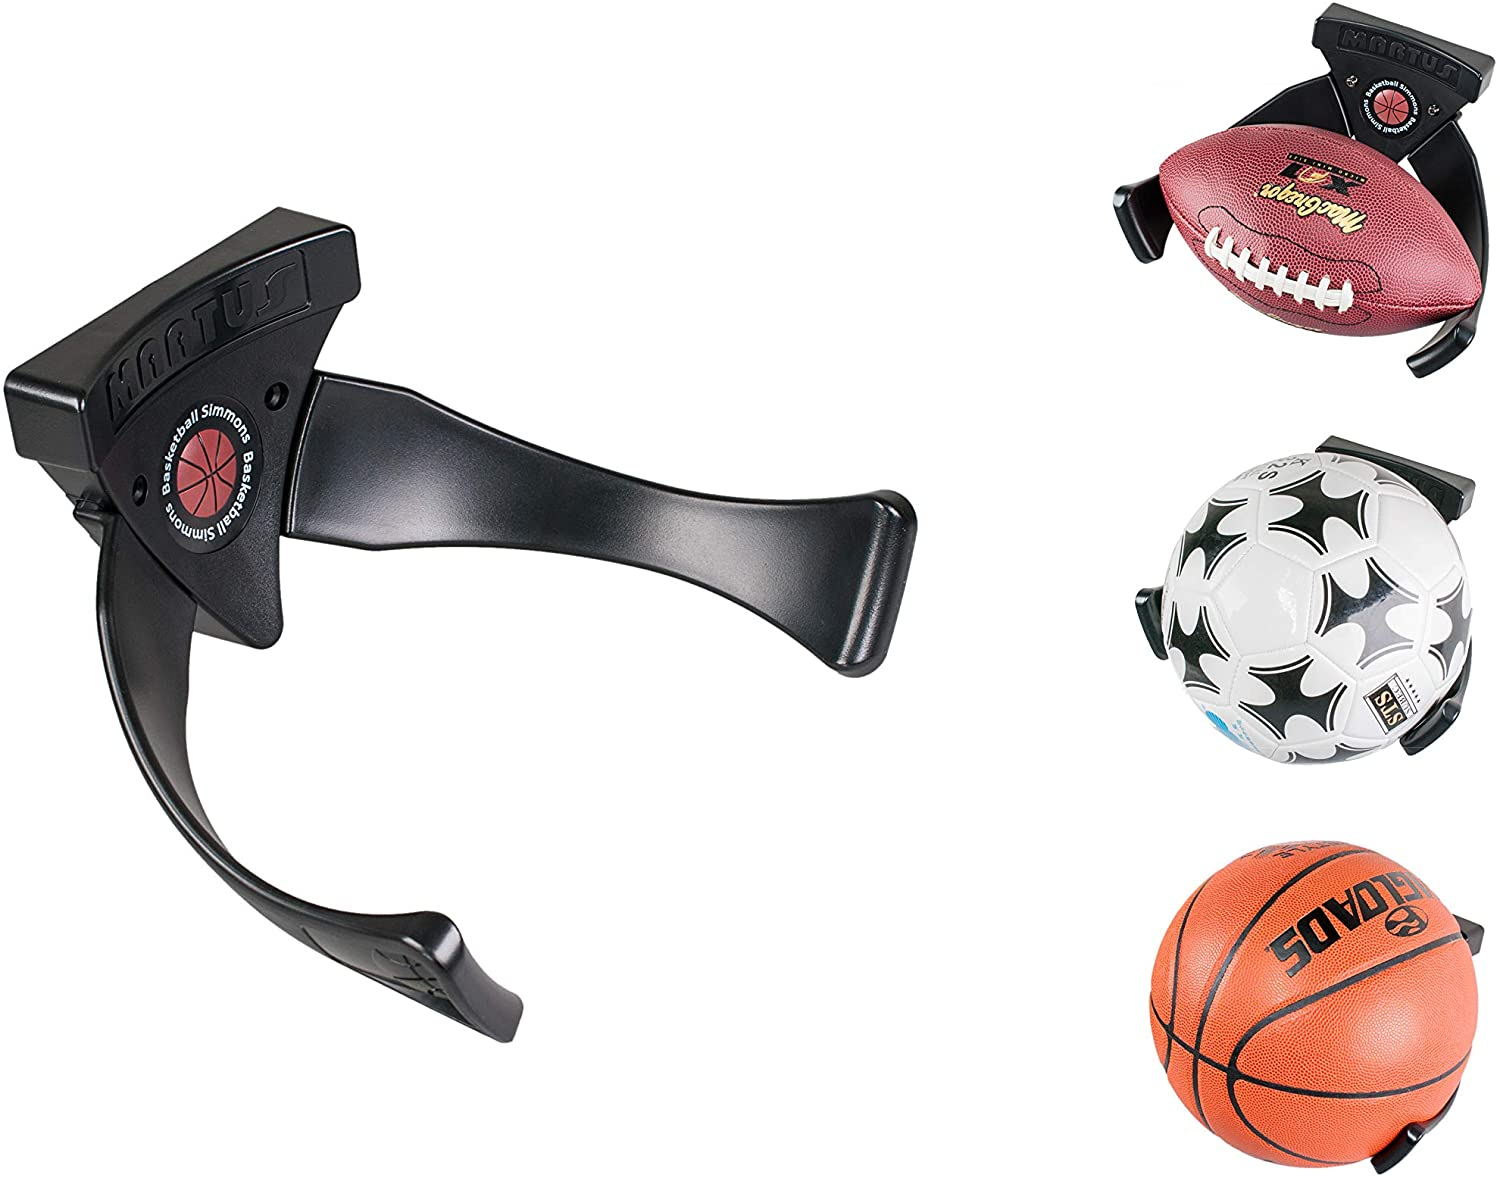 Tansato Wall Mounted Ball Claw, Basketball Football Soccer Volleyball Sports Ball Holder Space Saver Display, Ball Storage & Decoration Shelf, Black